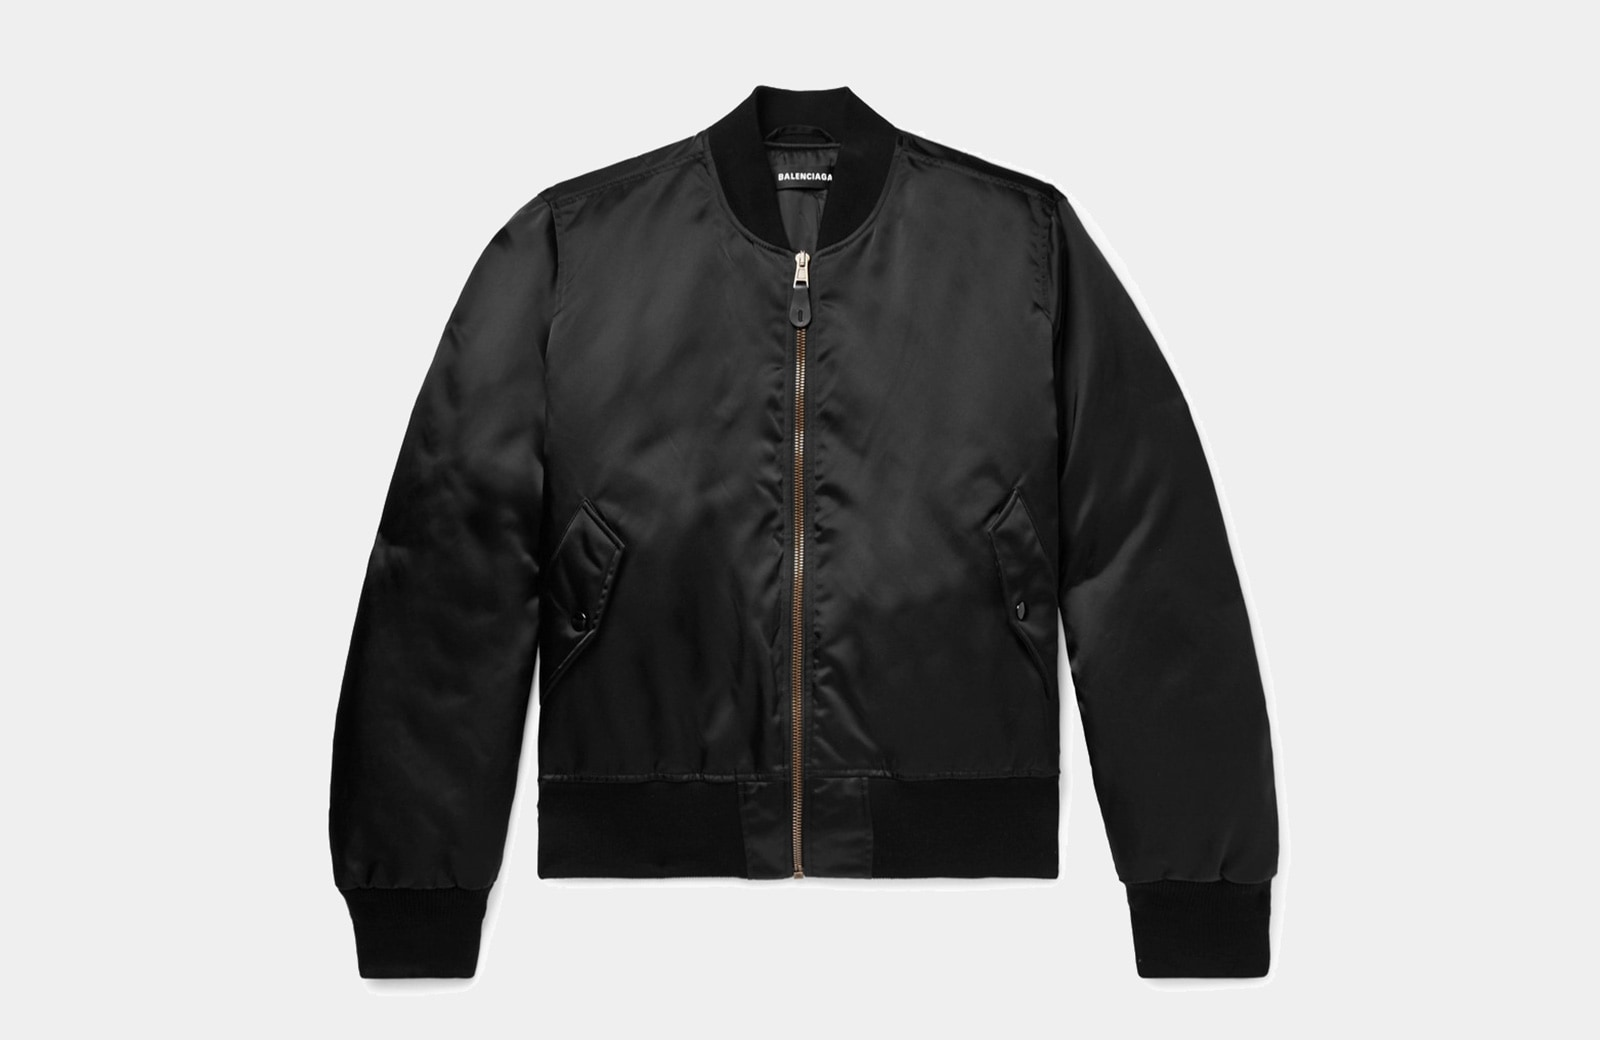 c4989945c 22 Best Bomber Jackets For Men: Your Definitive Guide To Look Amazing